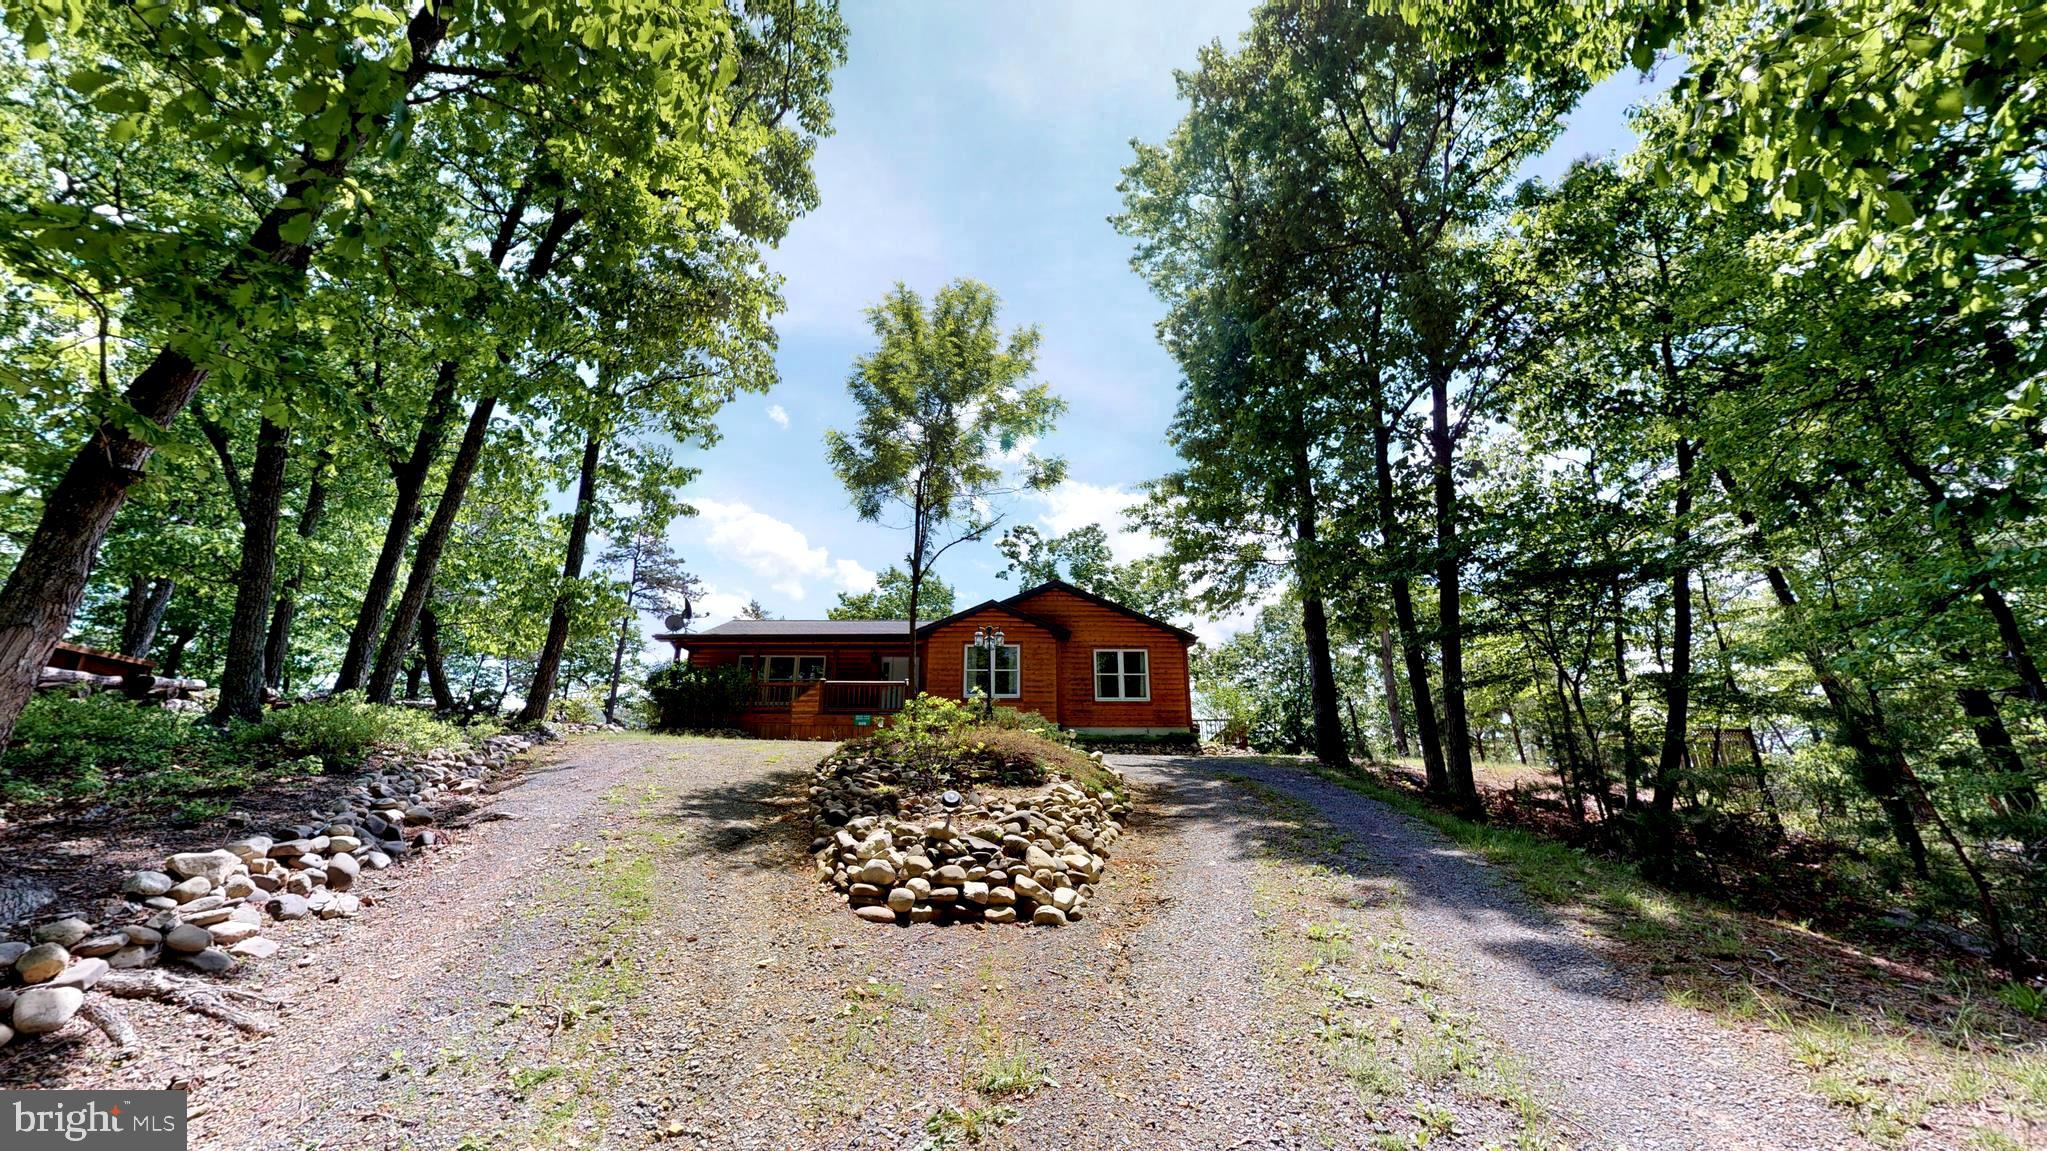 609 FOREST RETREAT DRIVE, PETERSBURG, WV 26847